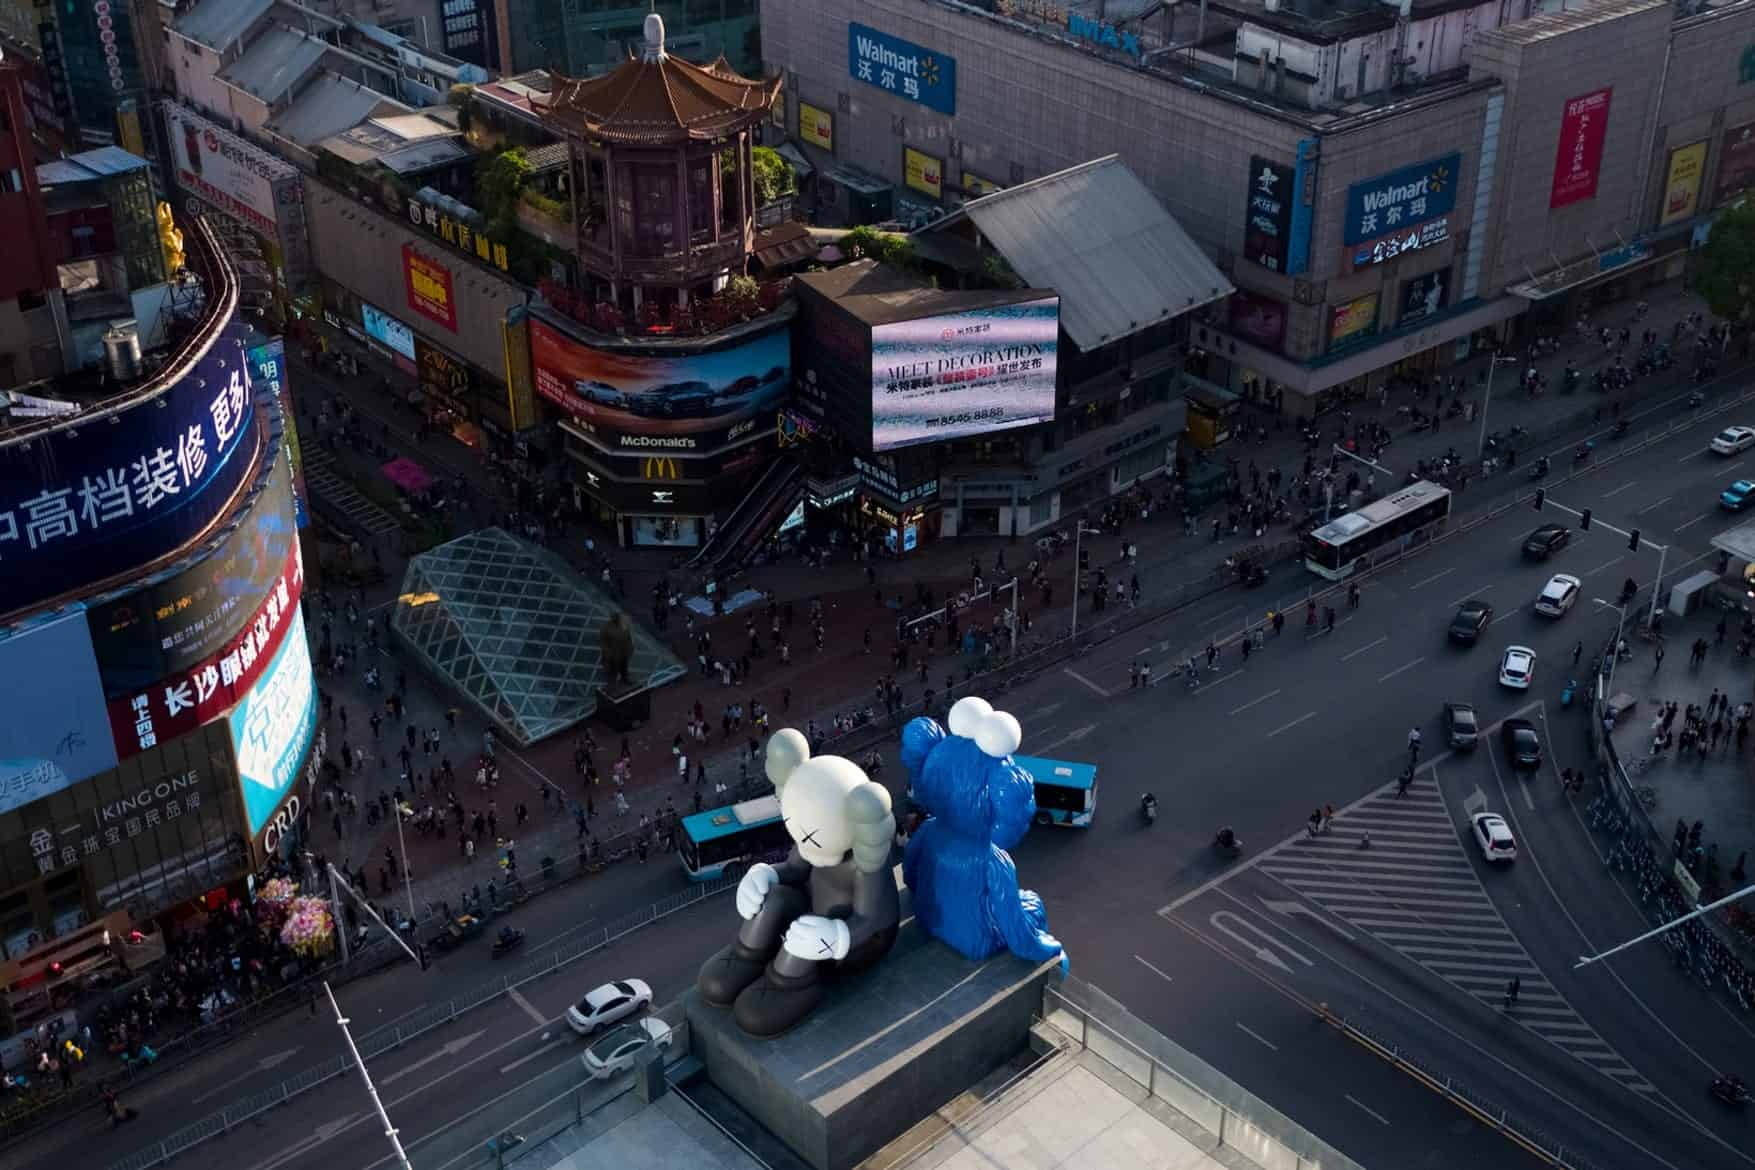 twee sculpturen van KAWS in China